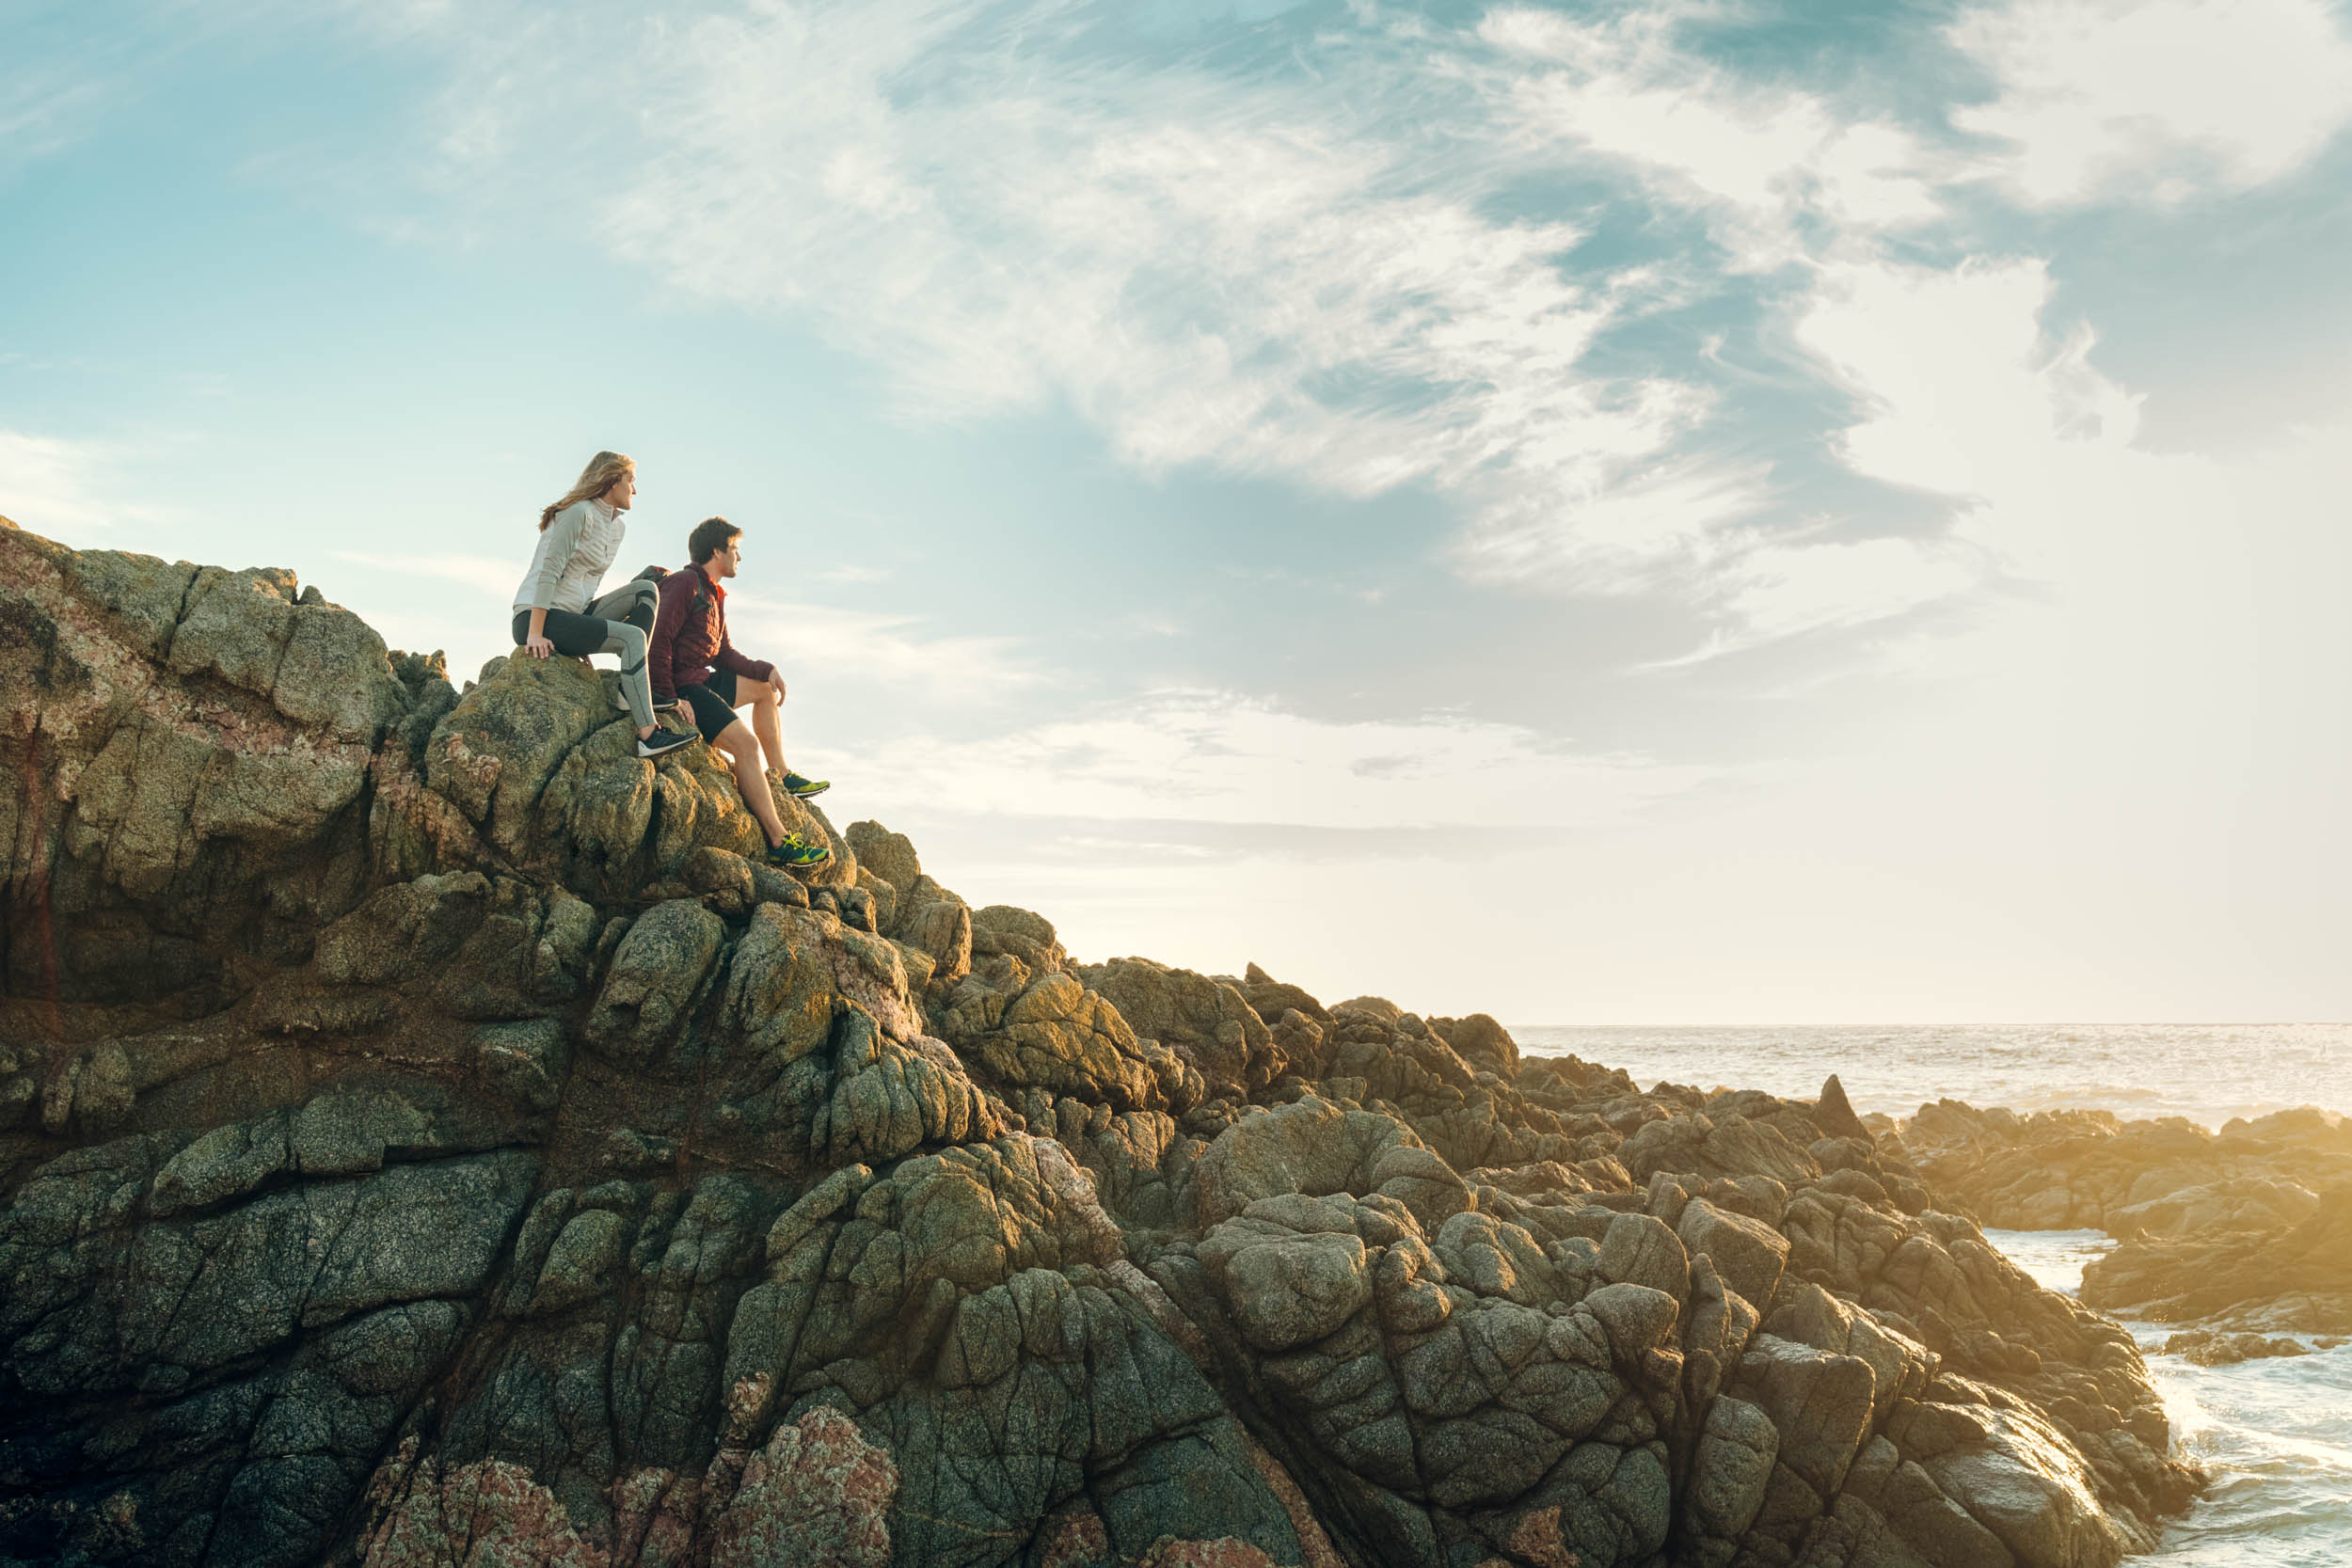 Female athlete sits next to male athlete on a rocky coast while watching the sunset